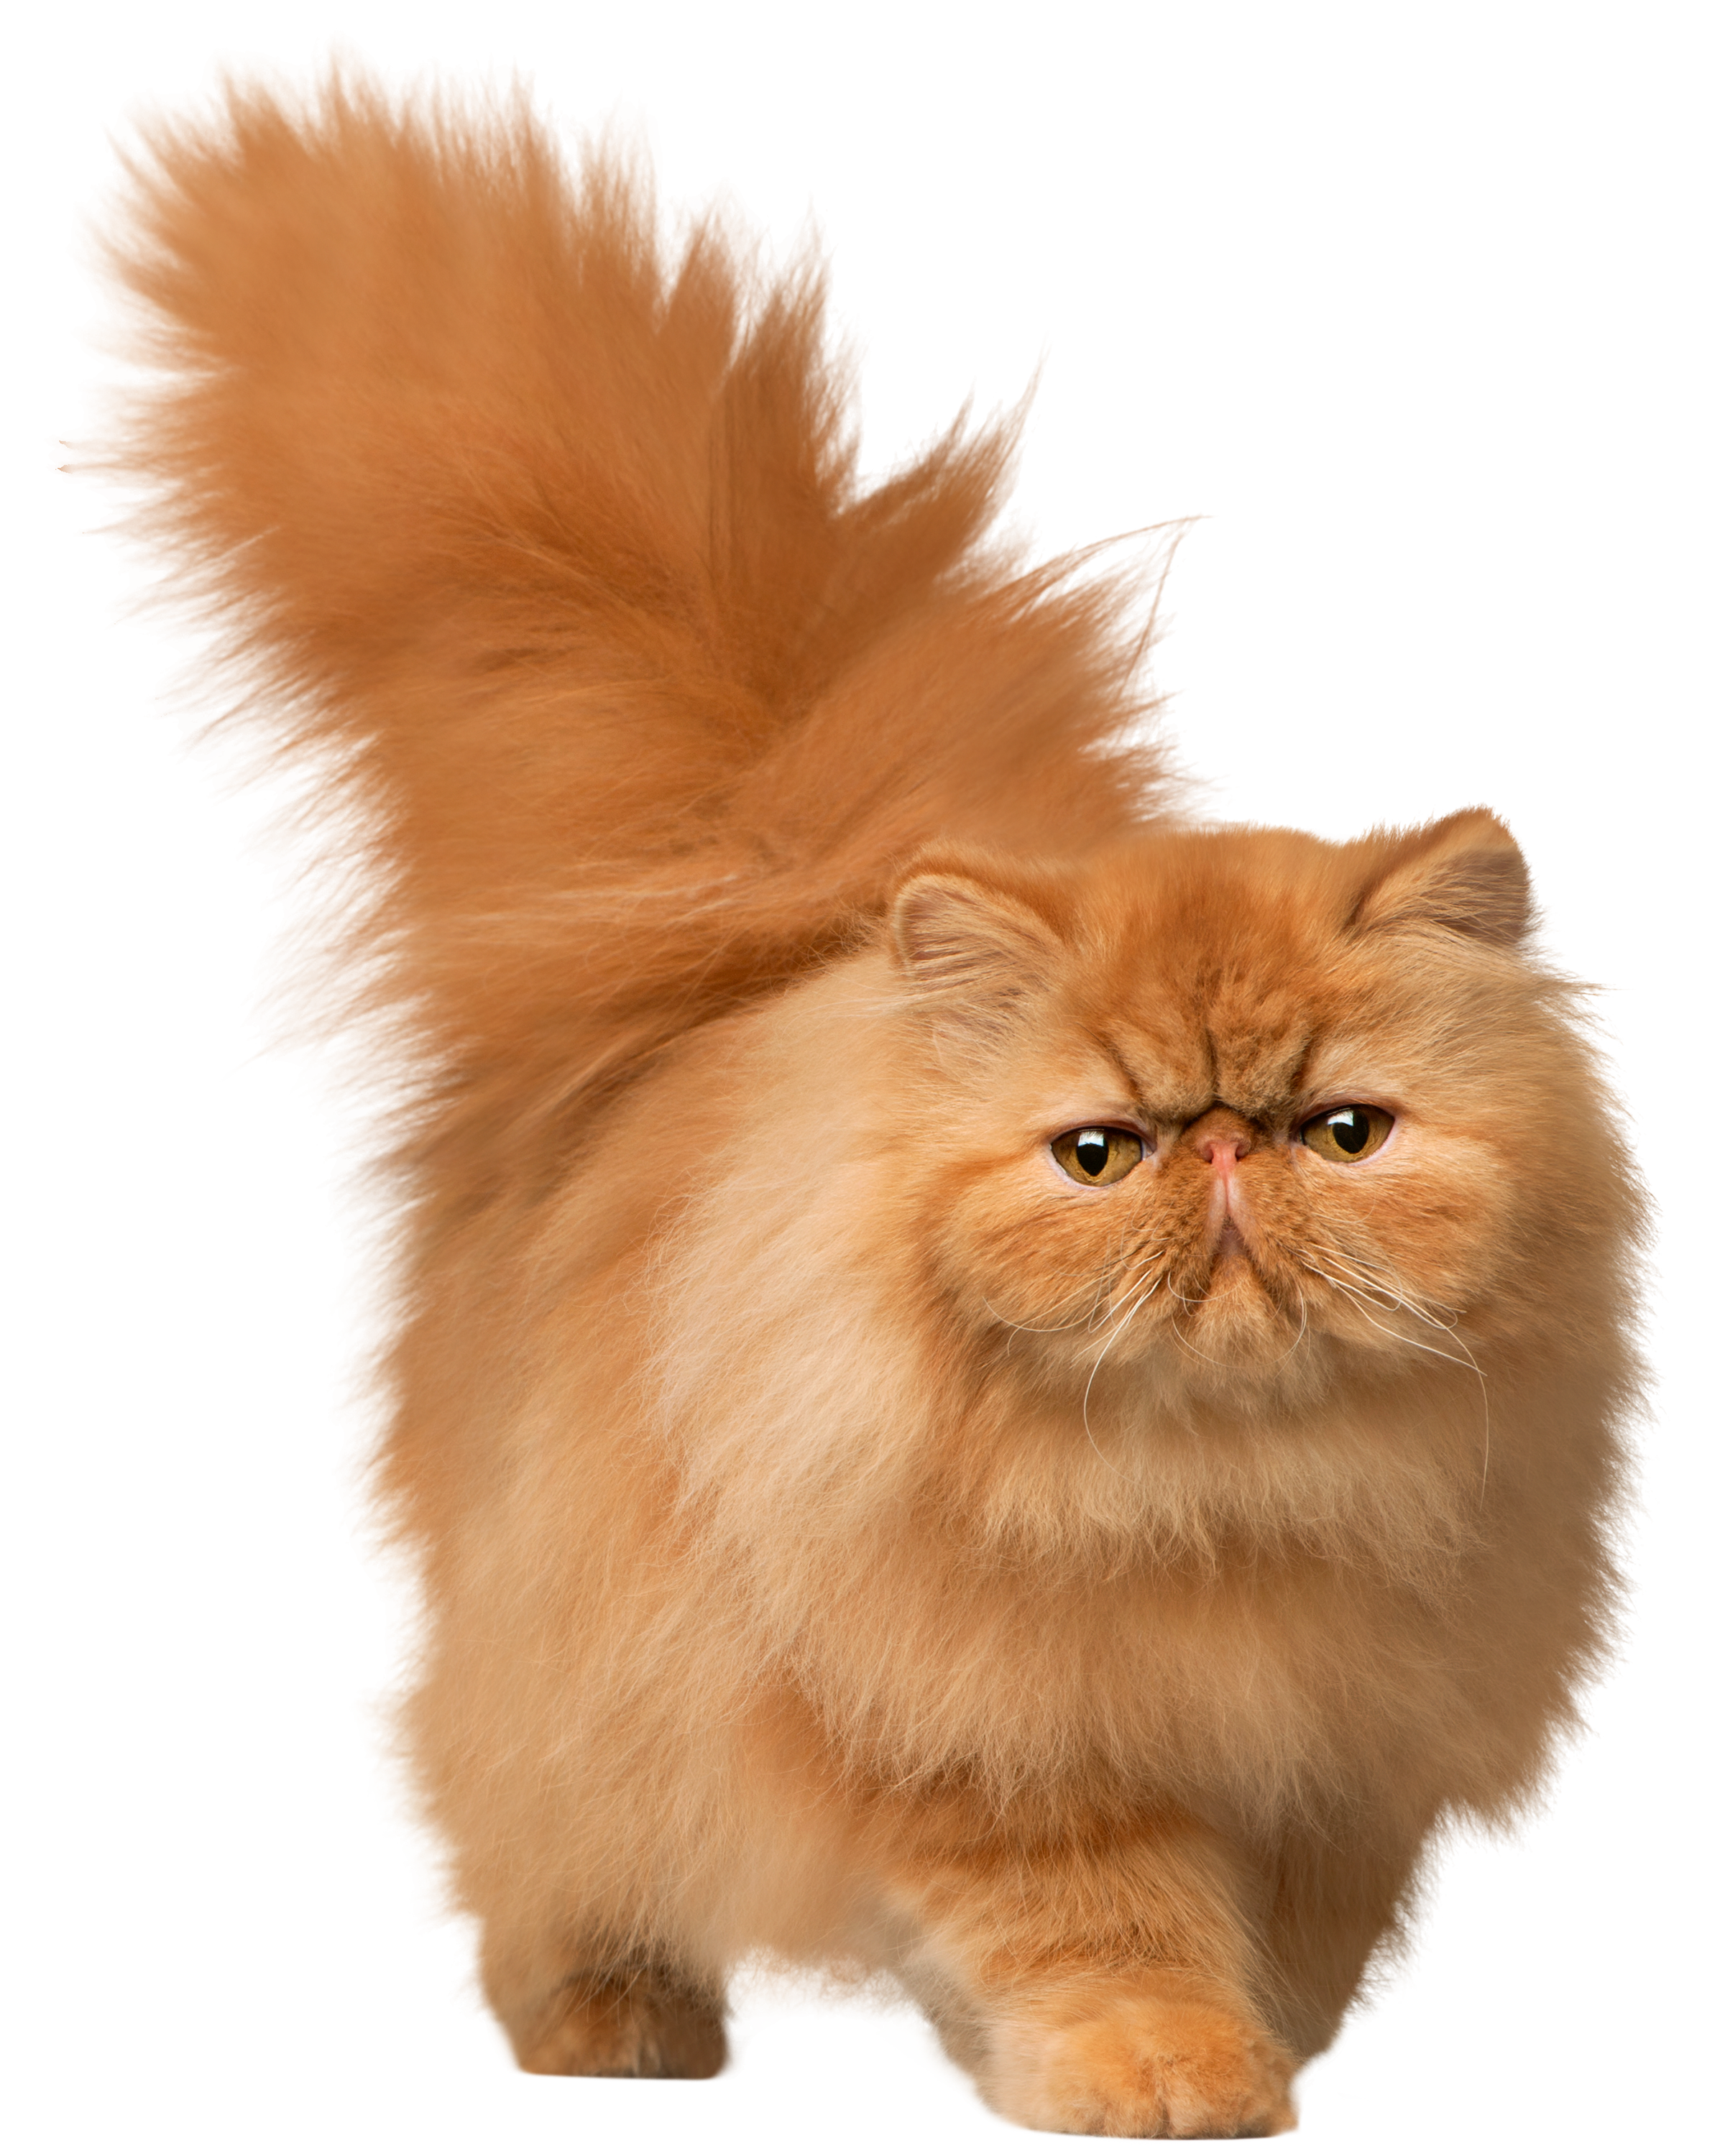 Cat png image. Cats free images download